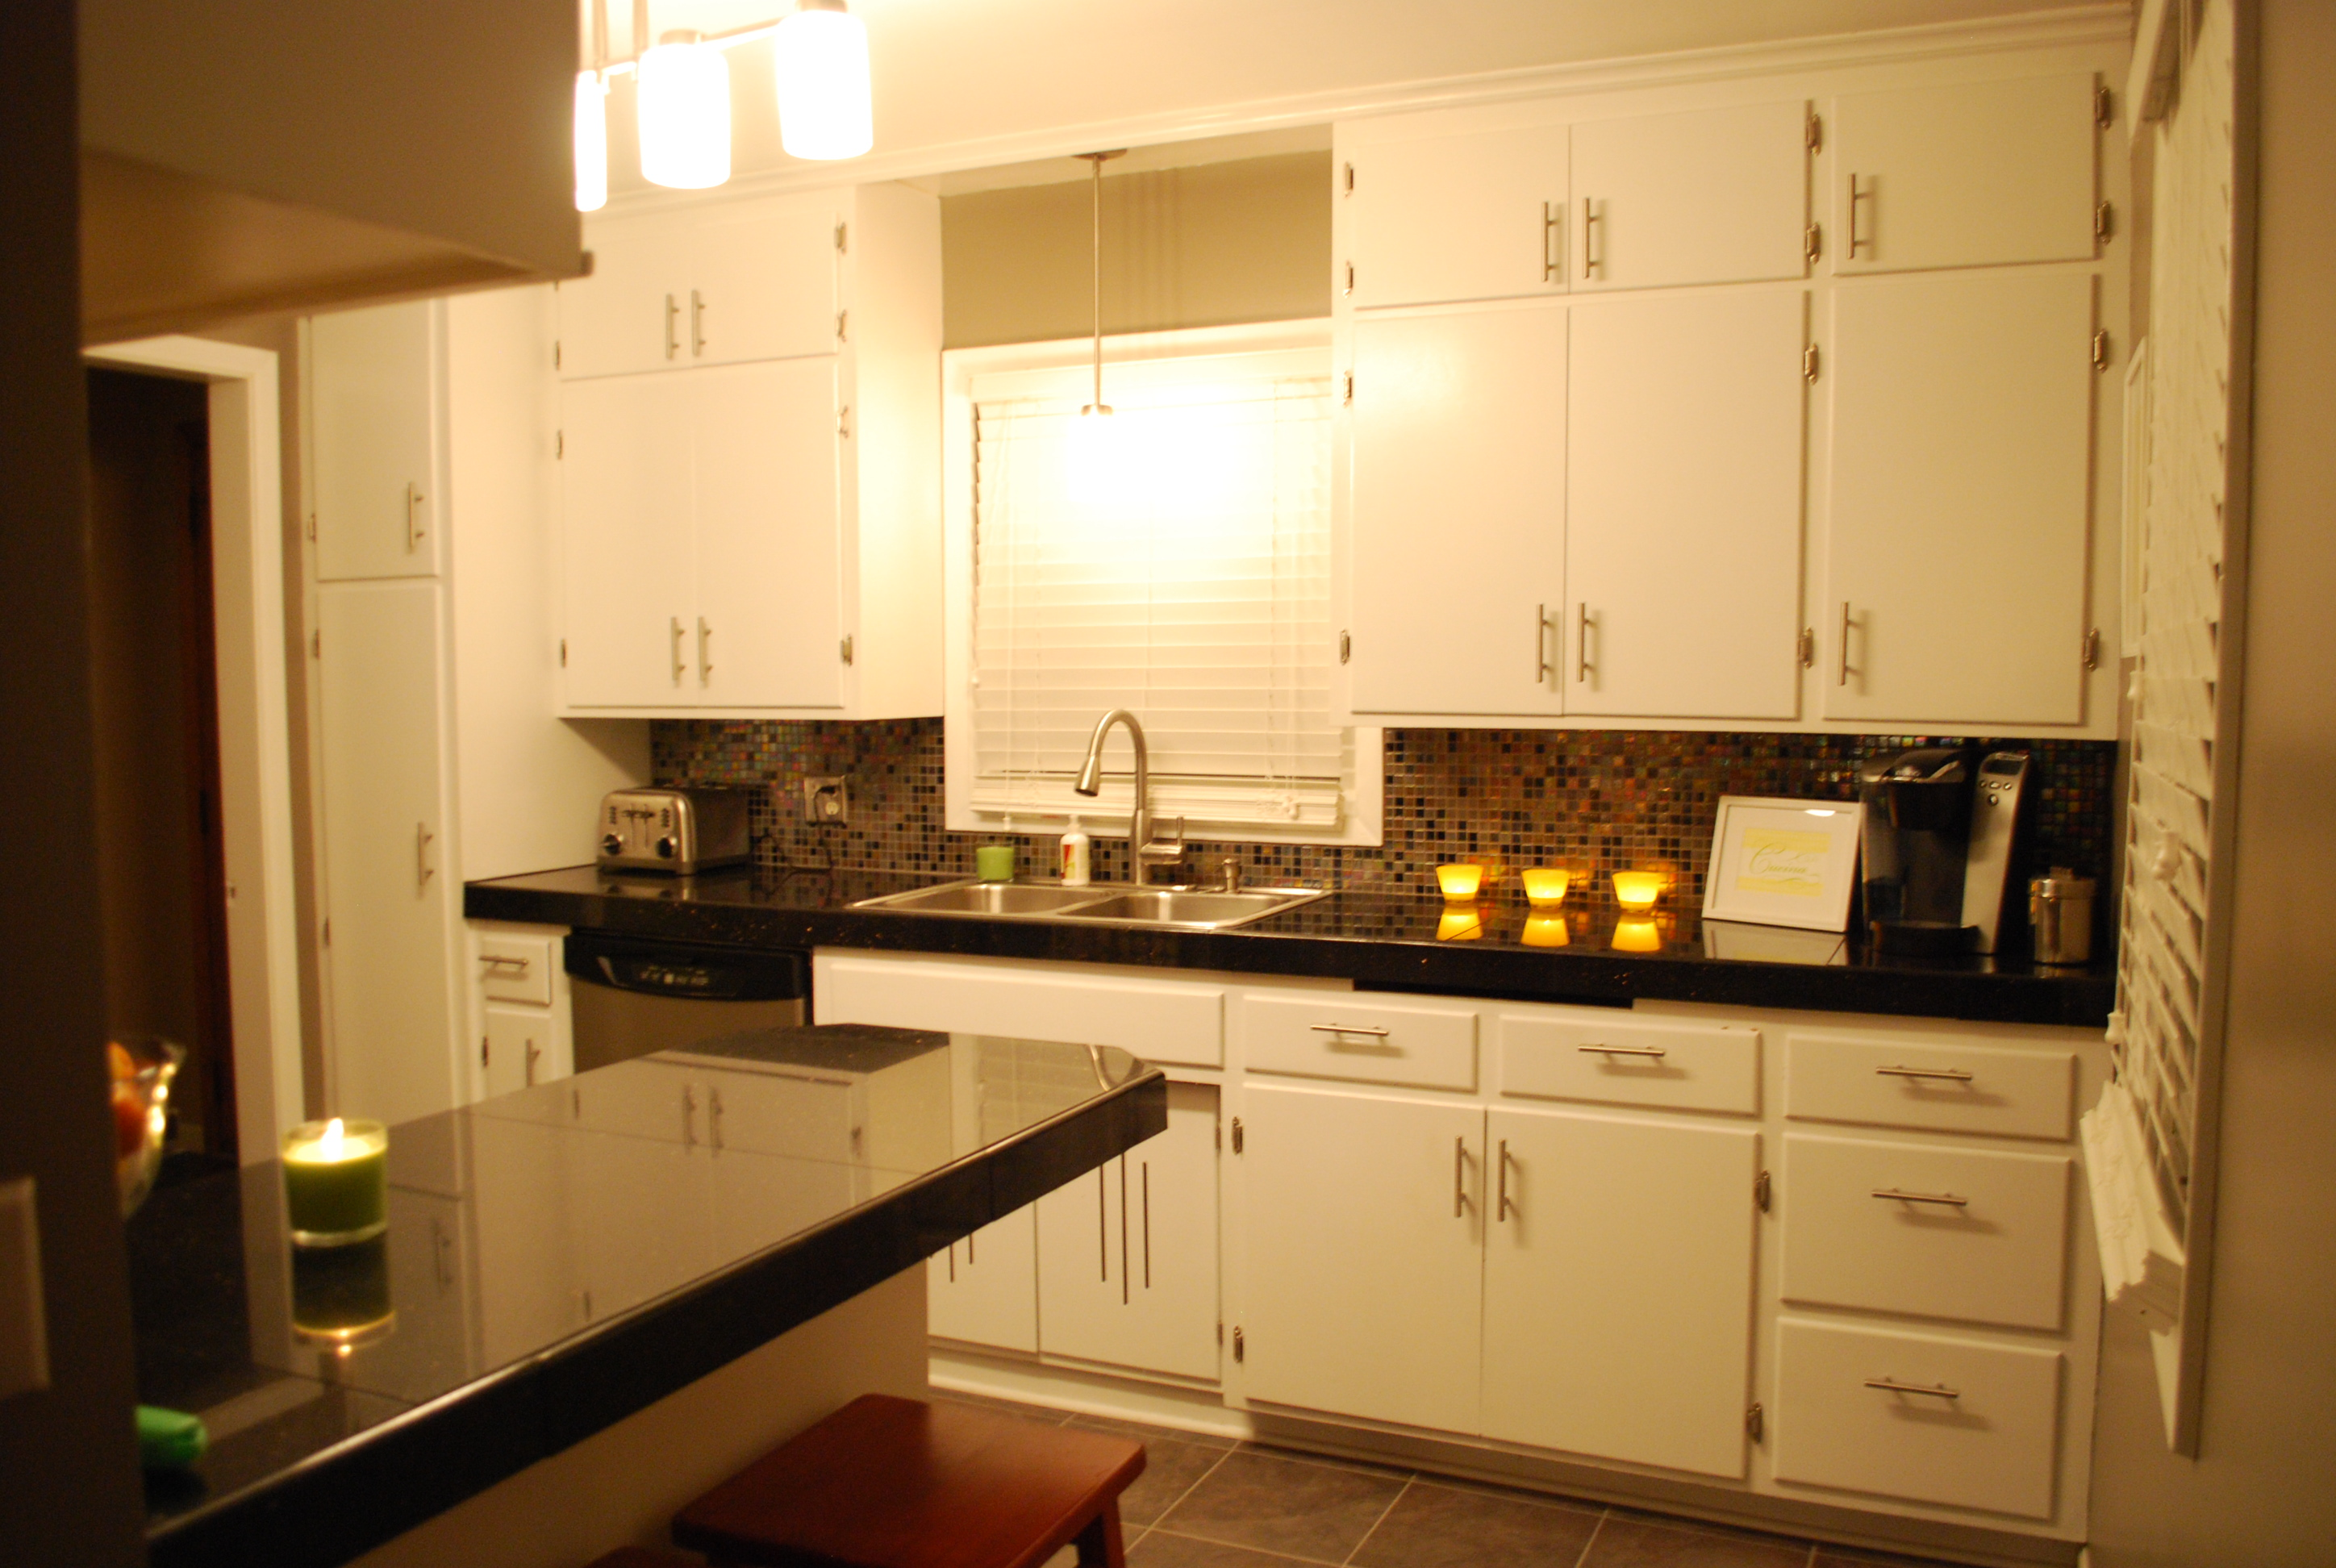 Fancy kitchen on a budget part ii Kitchen backsplash ideas pictures 2010